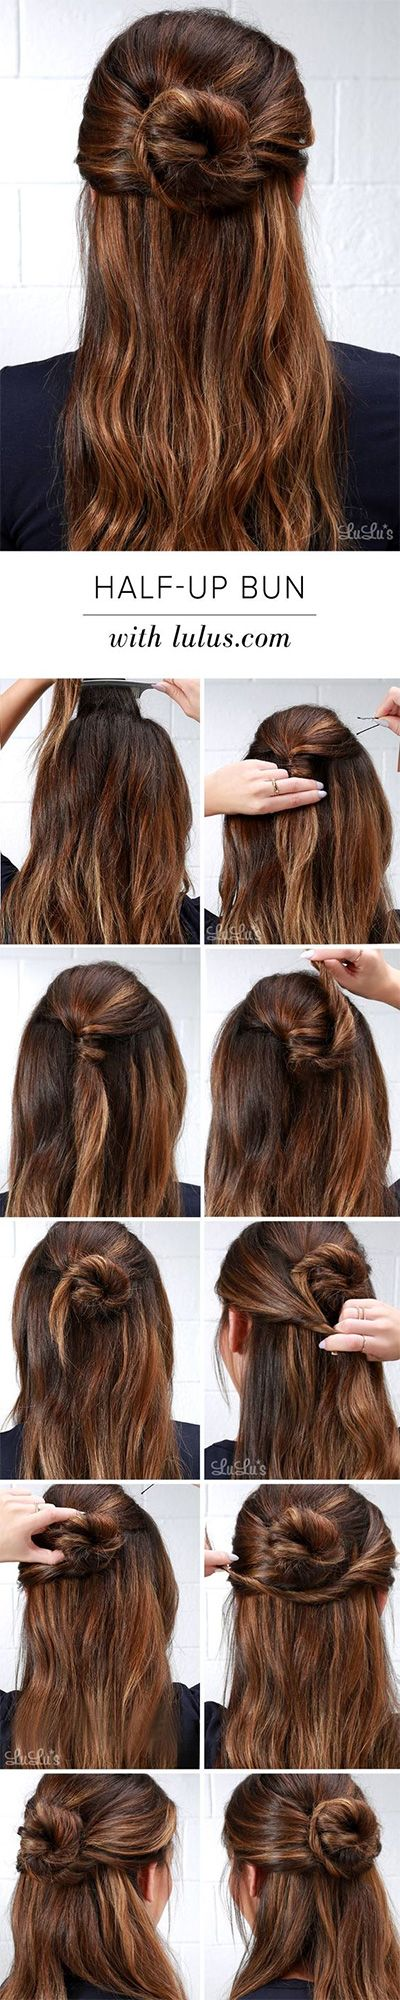 hun, half-bun top knot tutorials